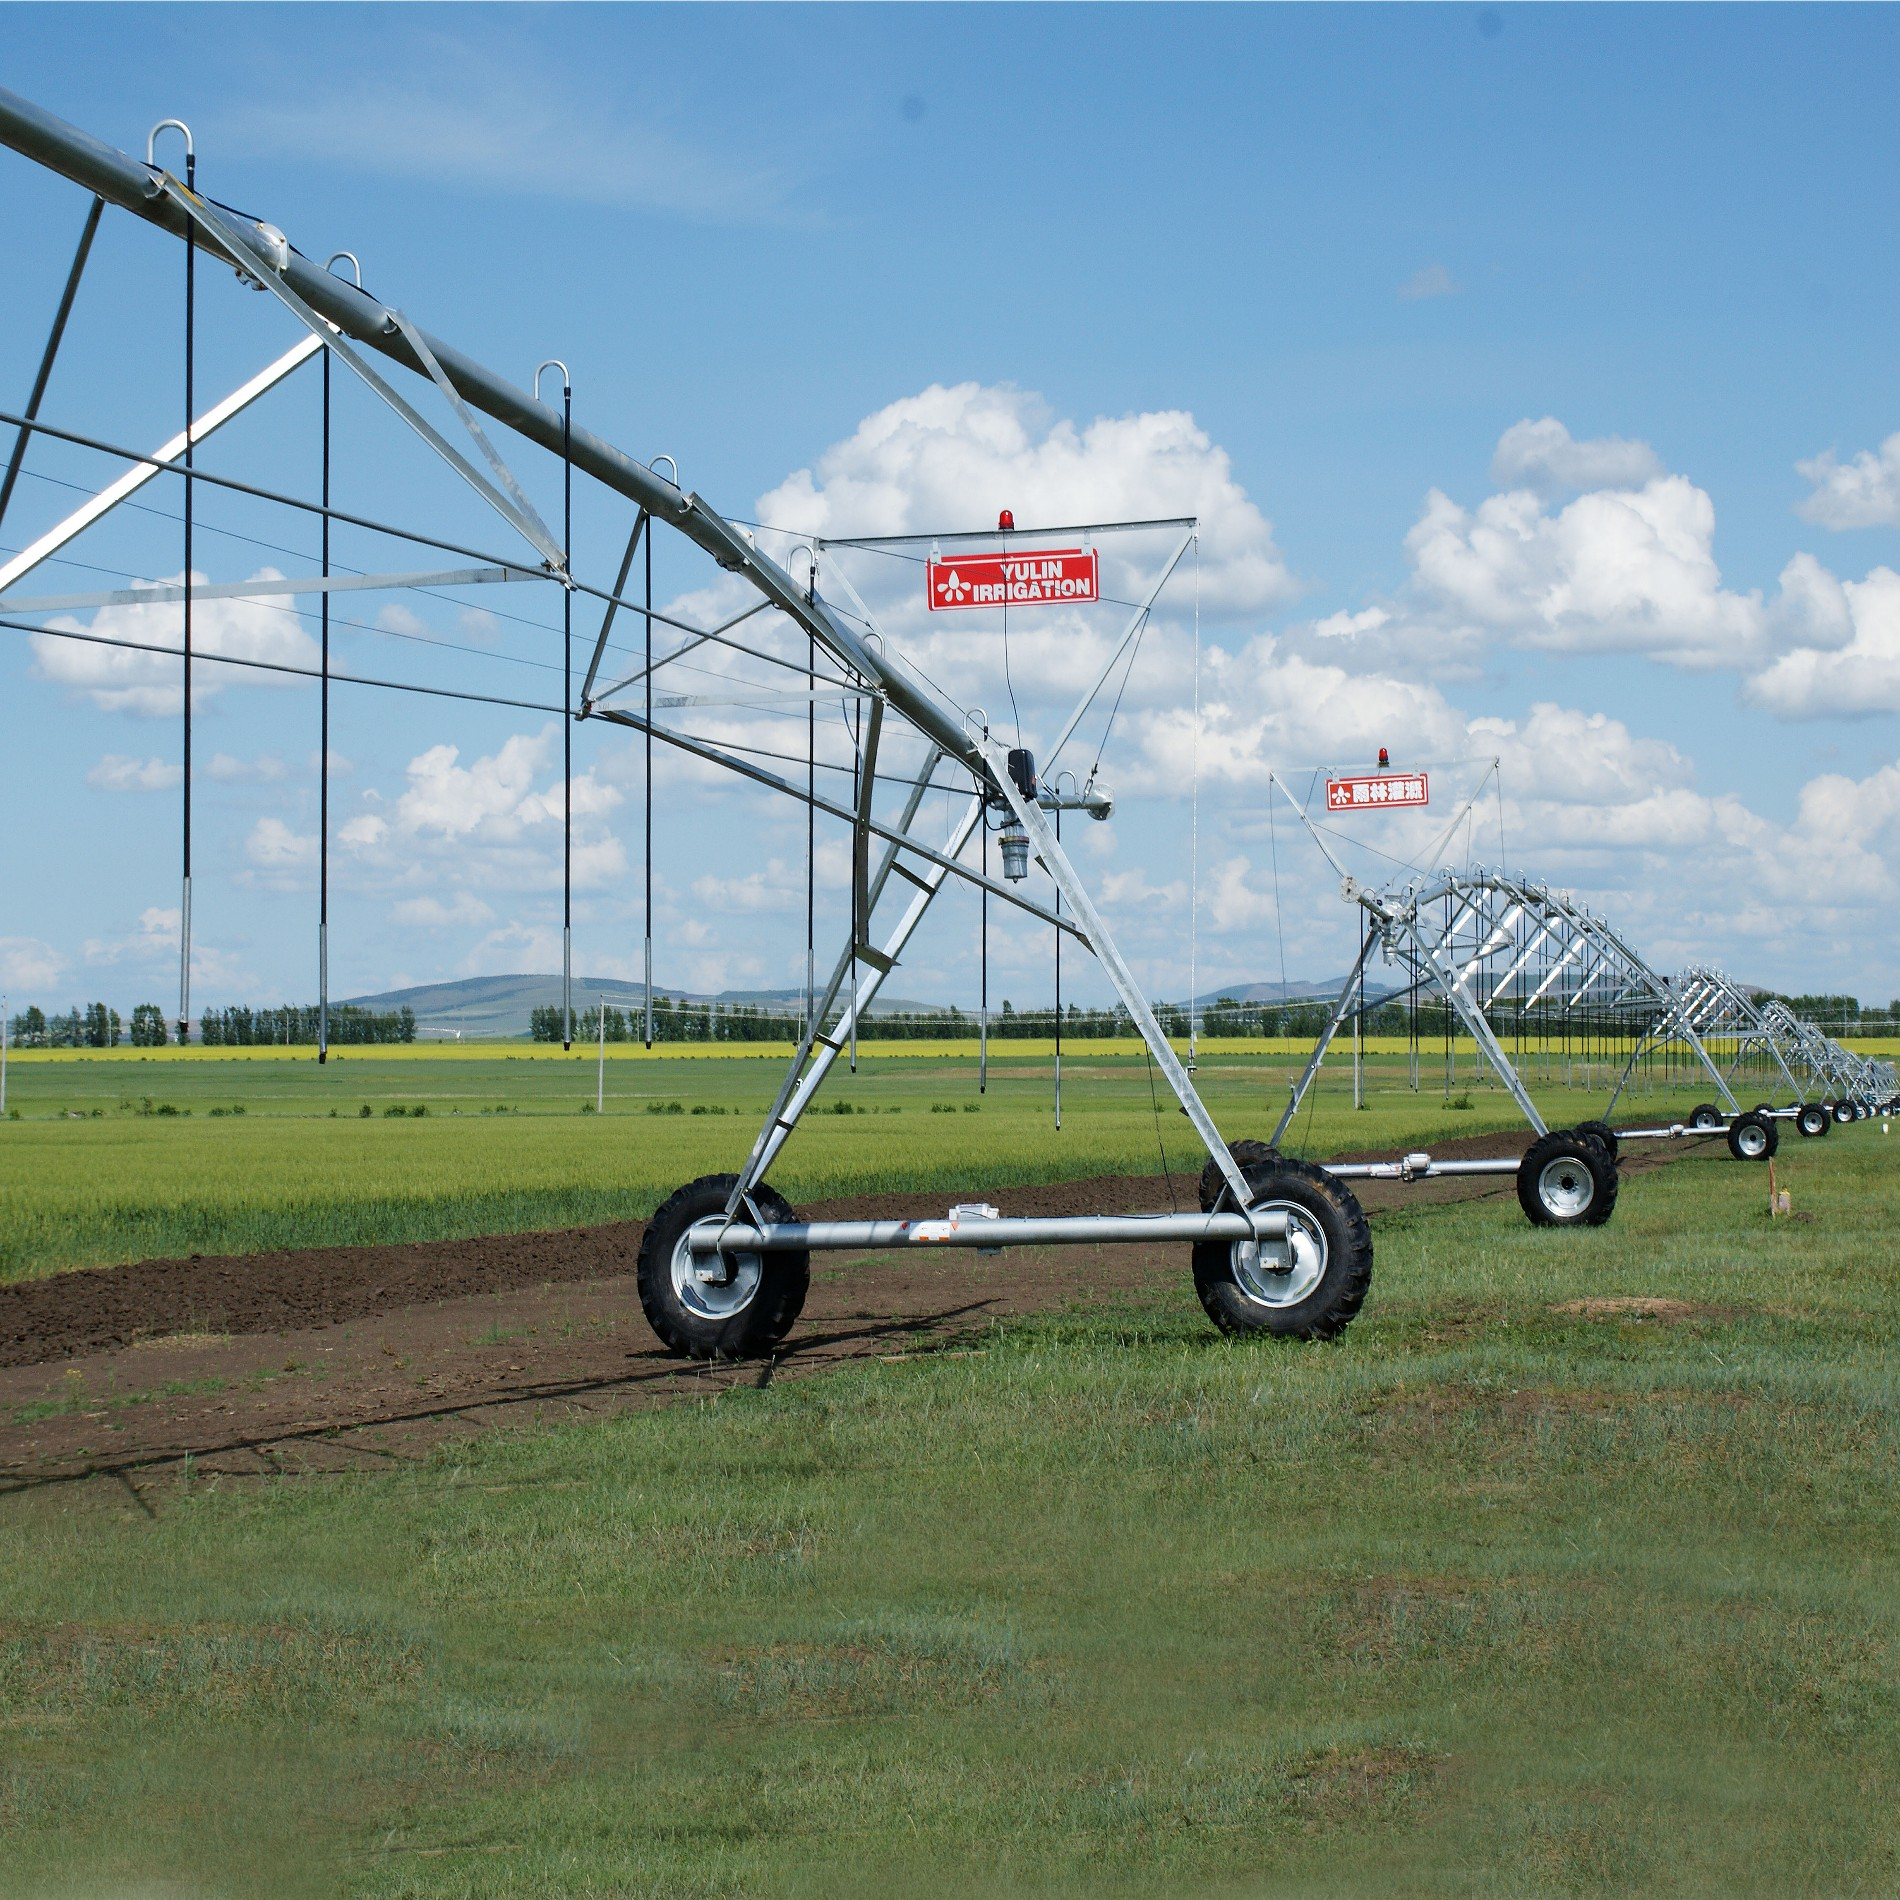 Fixed Center Pivot Irrigation System Factory Manufacturers, Fixed Center Pivot Irrigation System Factory Factory, Supply Fixed Center Pivot Irrigation System Factory